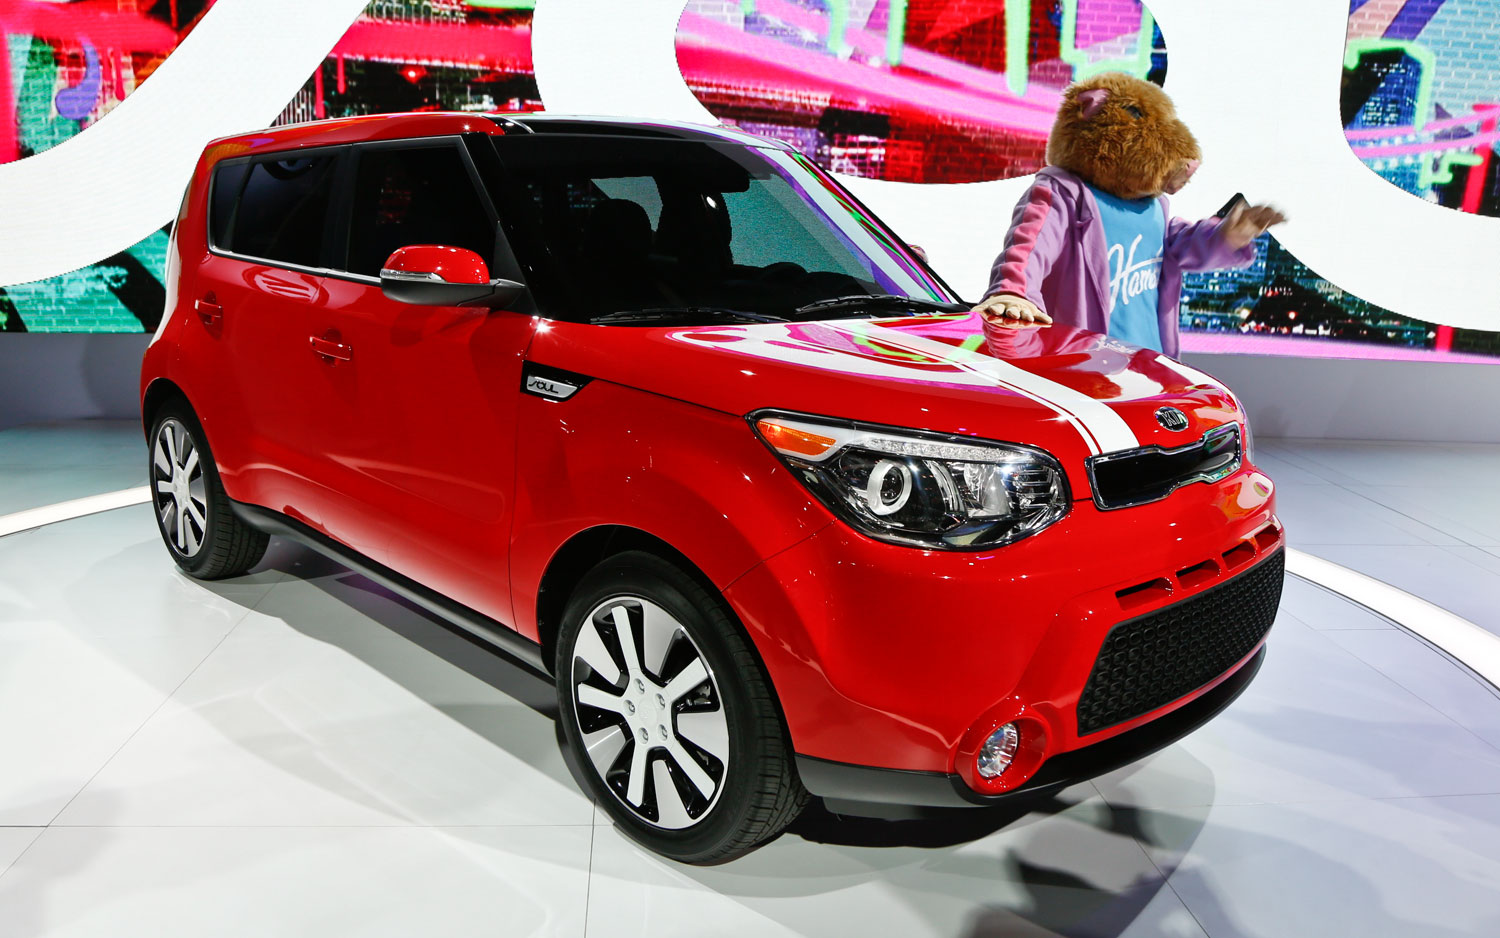 Kia Soul: Opening the tailgate